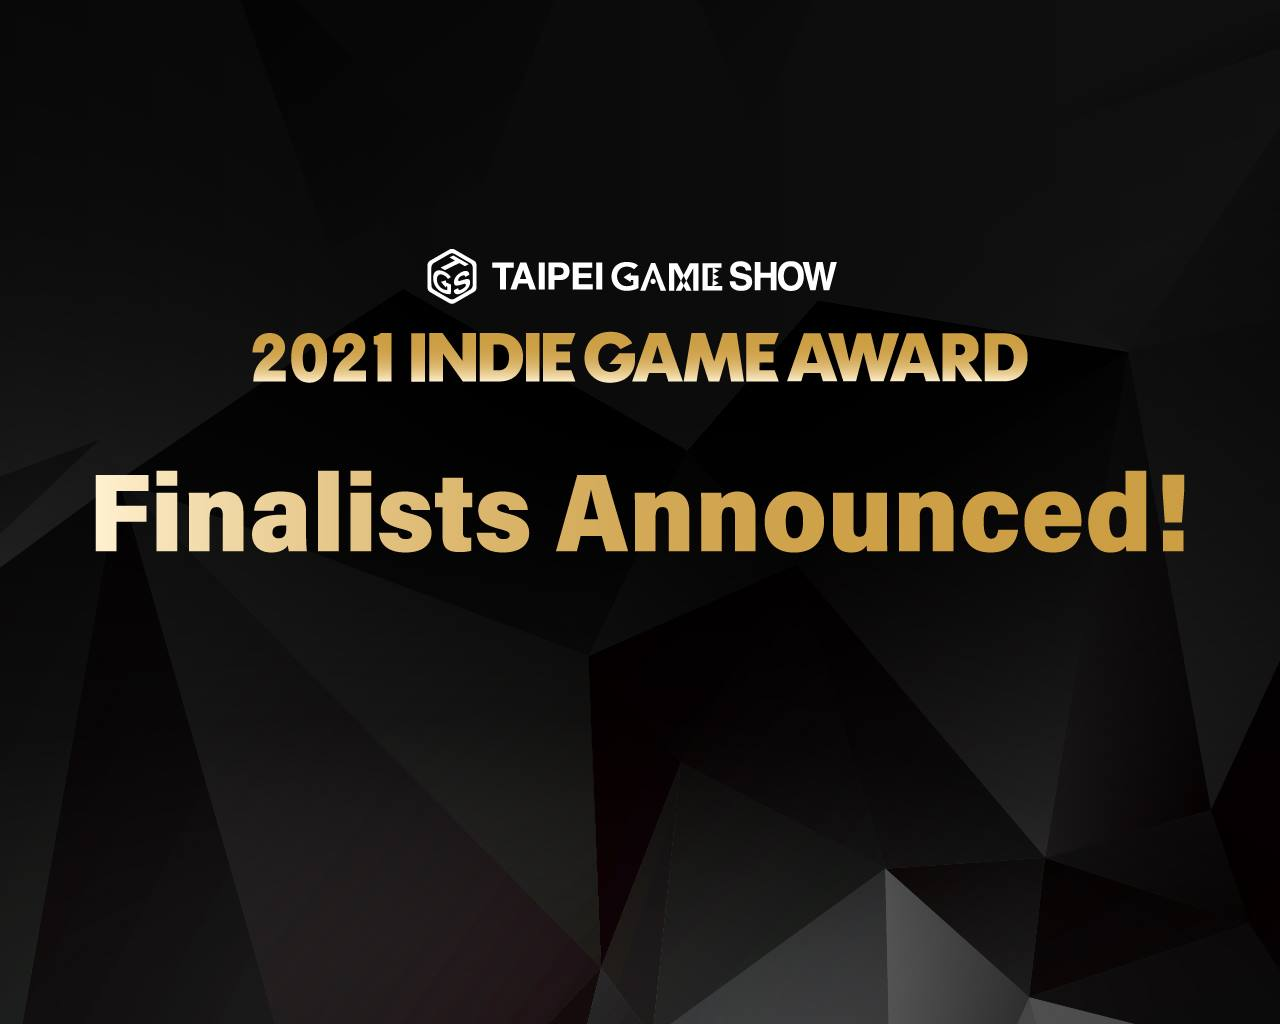 Taipei Game Show Released the Finalists of Indie Game Award 2021